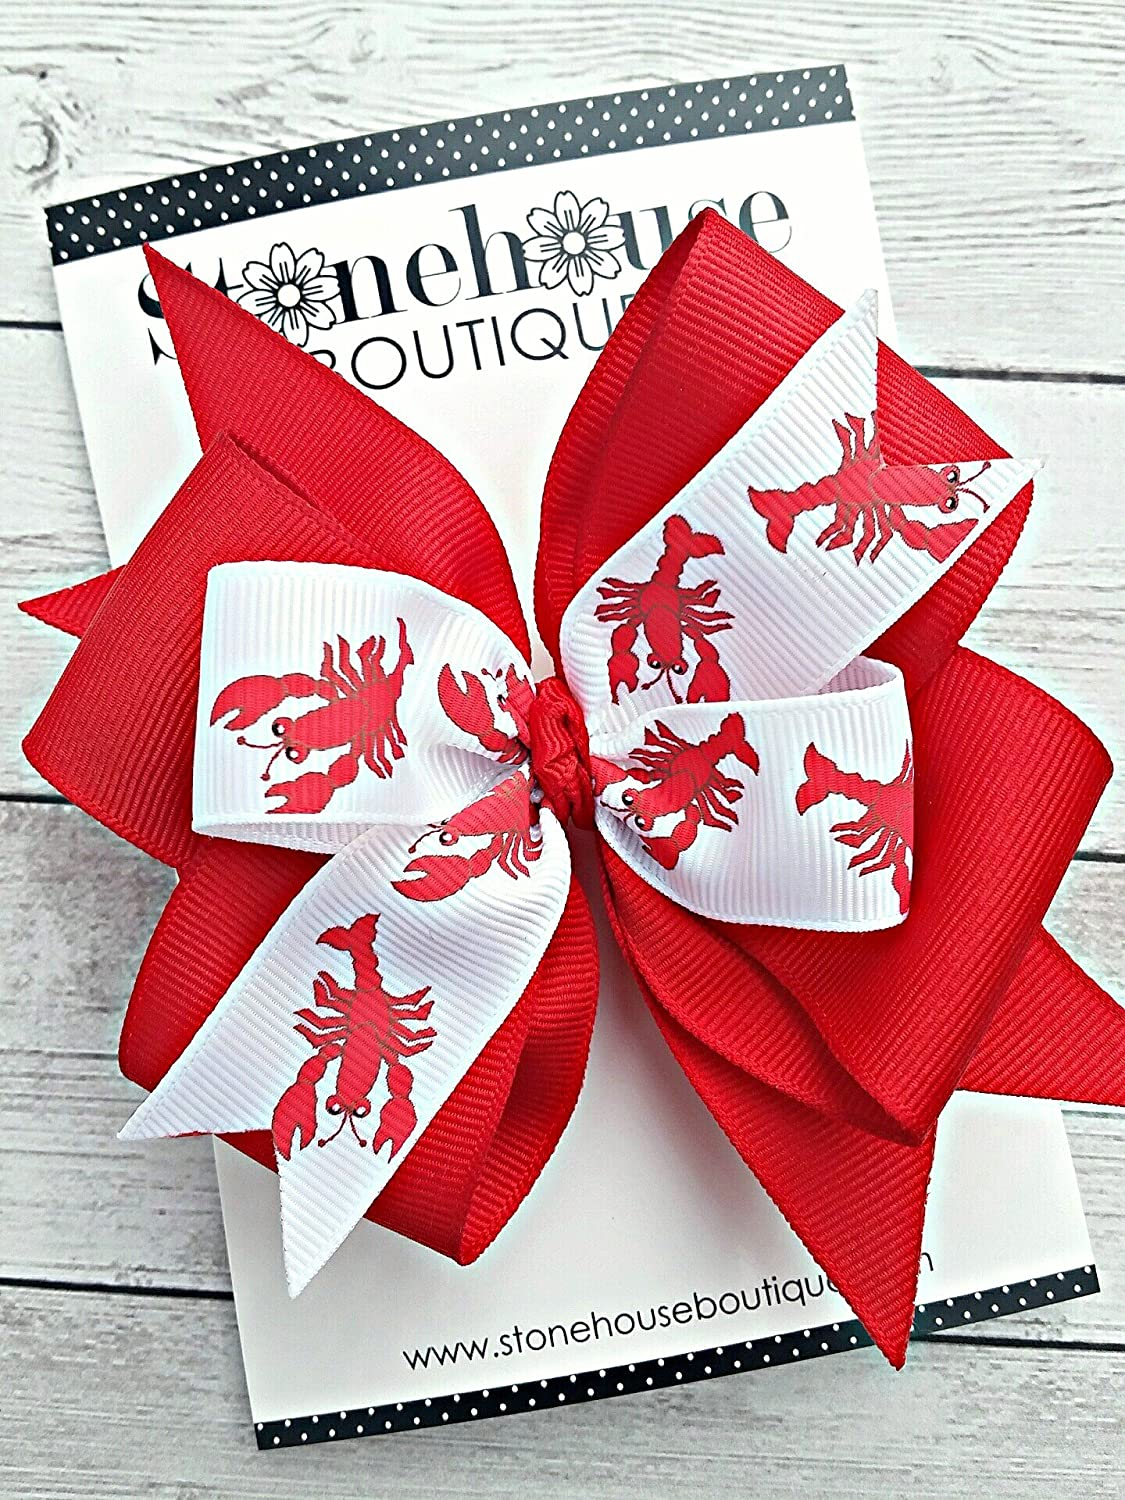 Lobster Boil Crawfish Cajun Hair Bow for Girls, Attach to Hair Clip, Barrette or Headband